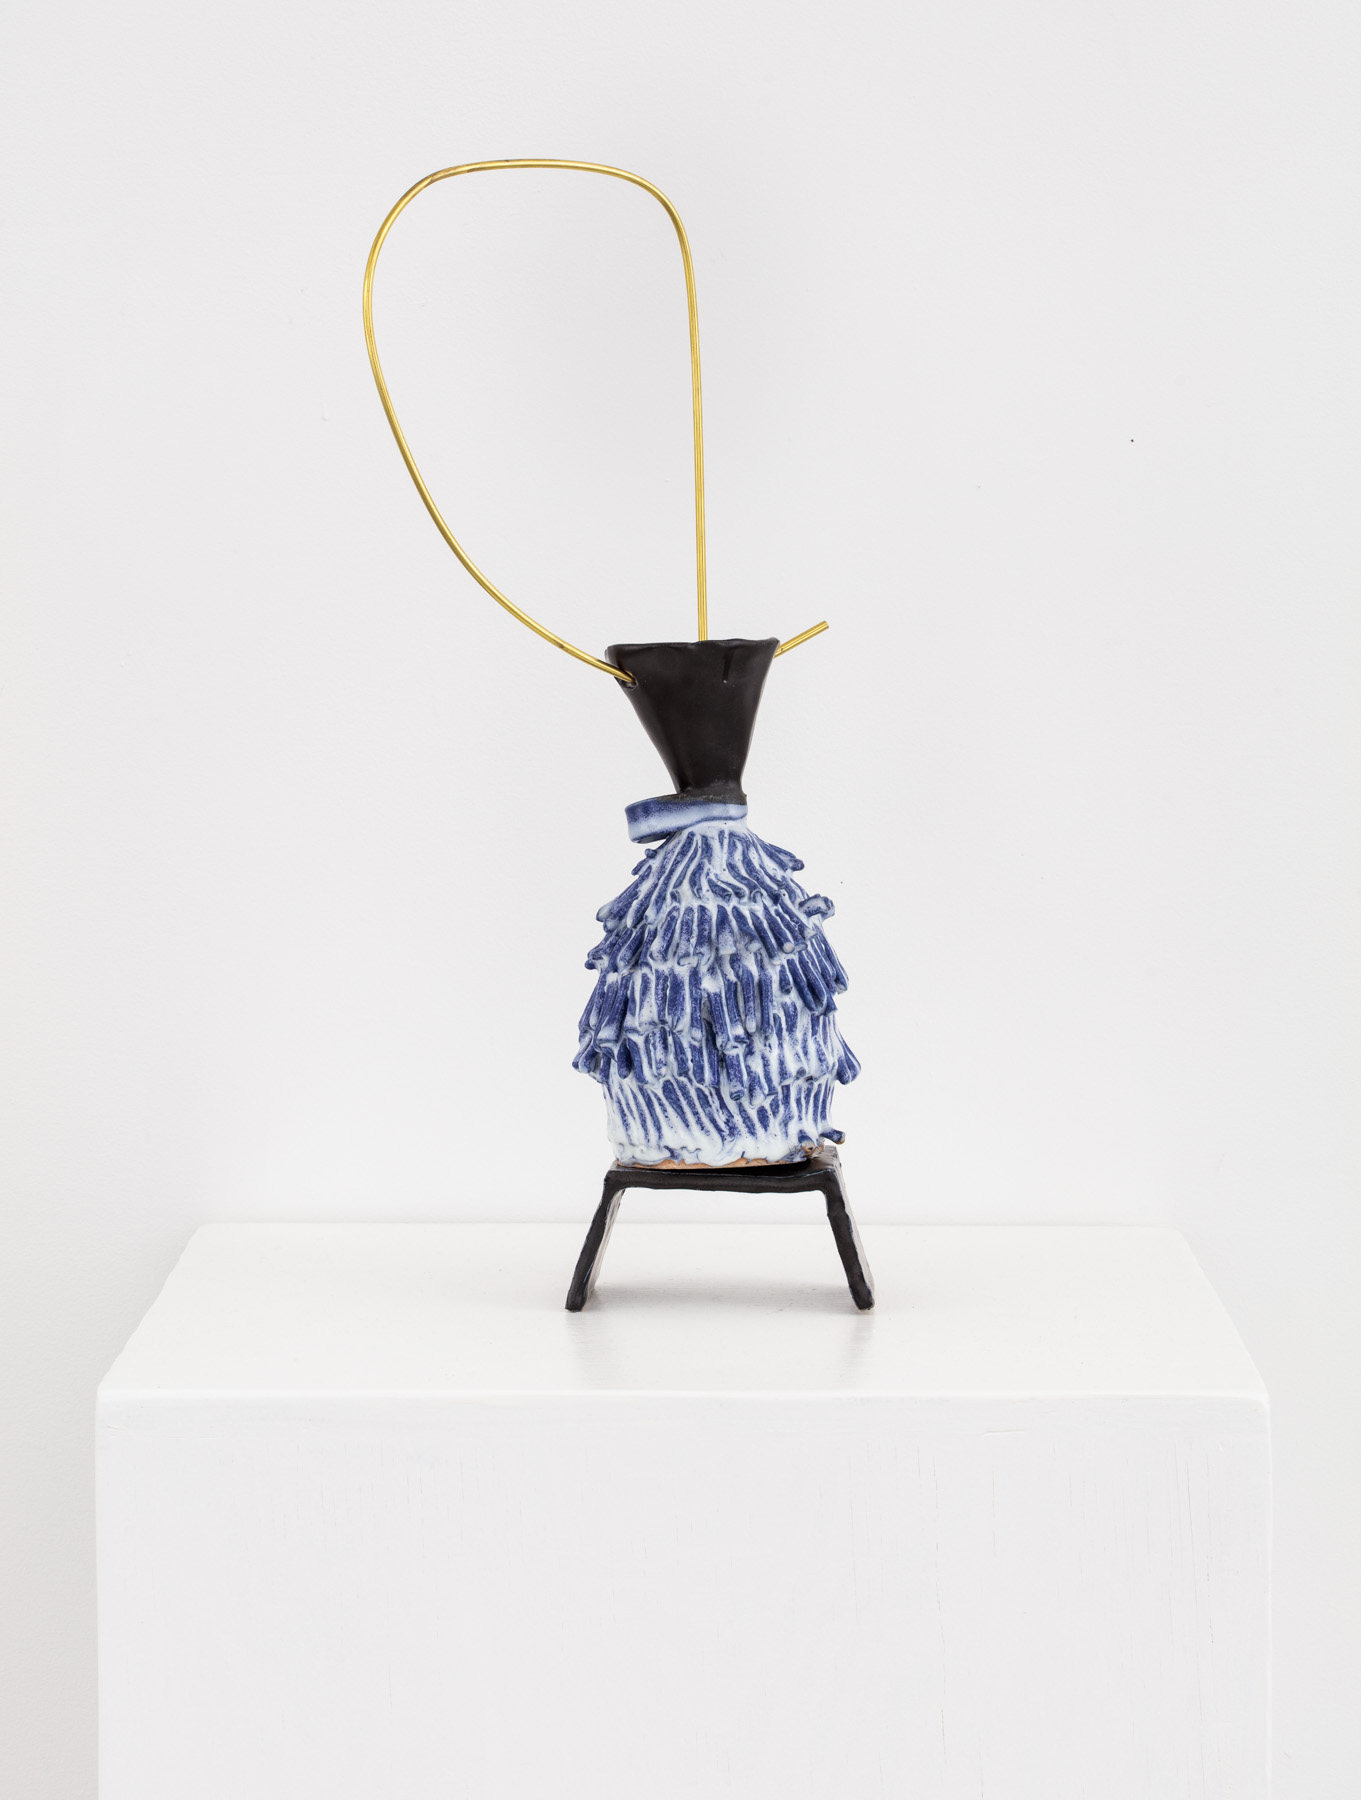 Quick Moves   Glazed ceramic and brass  5 inches x 3 inches x 20 inches  2016